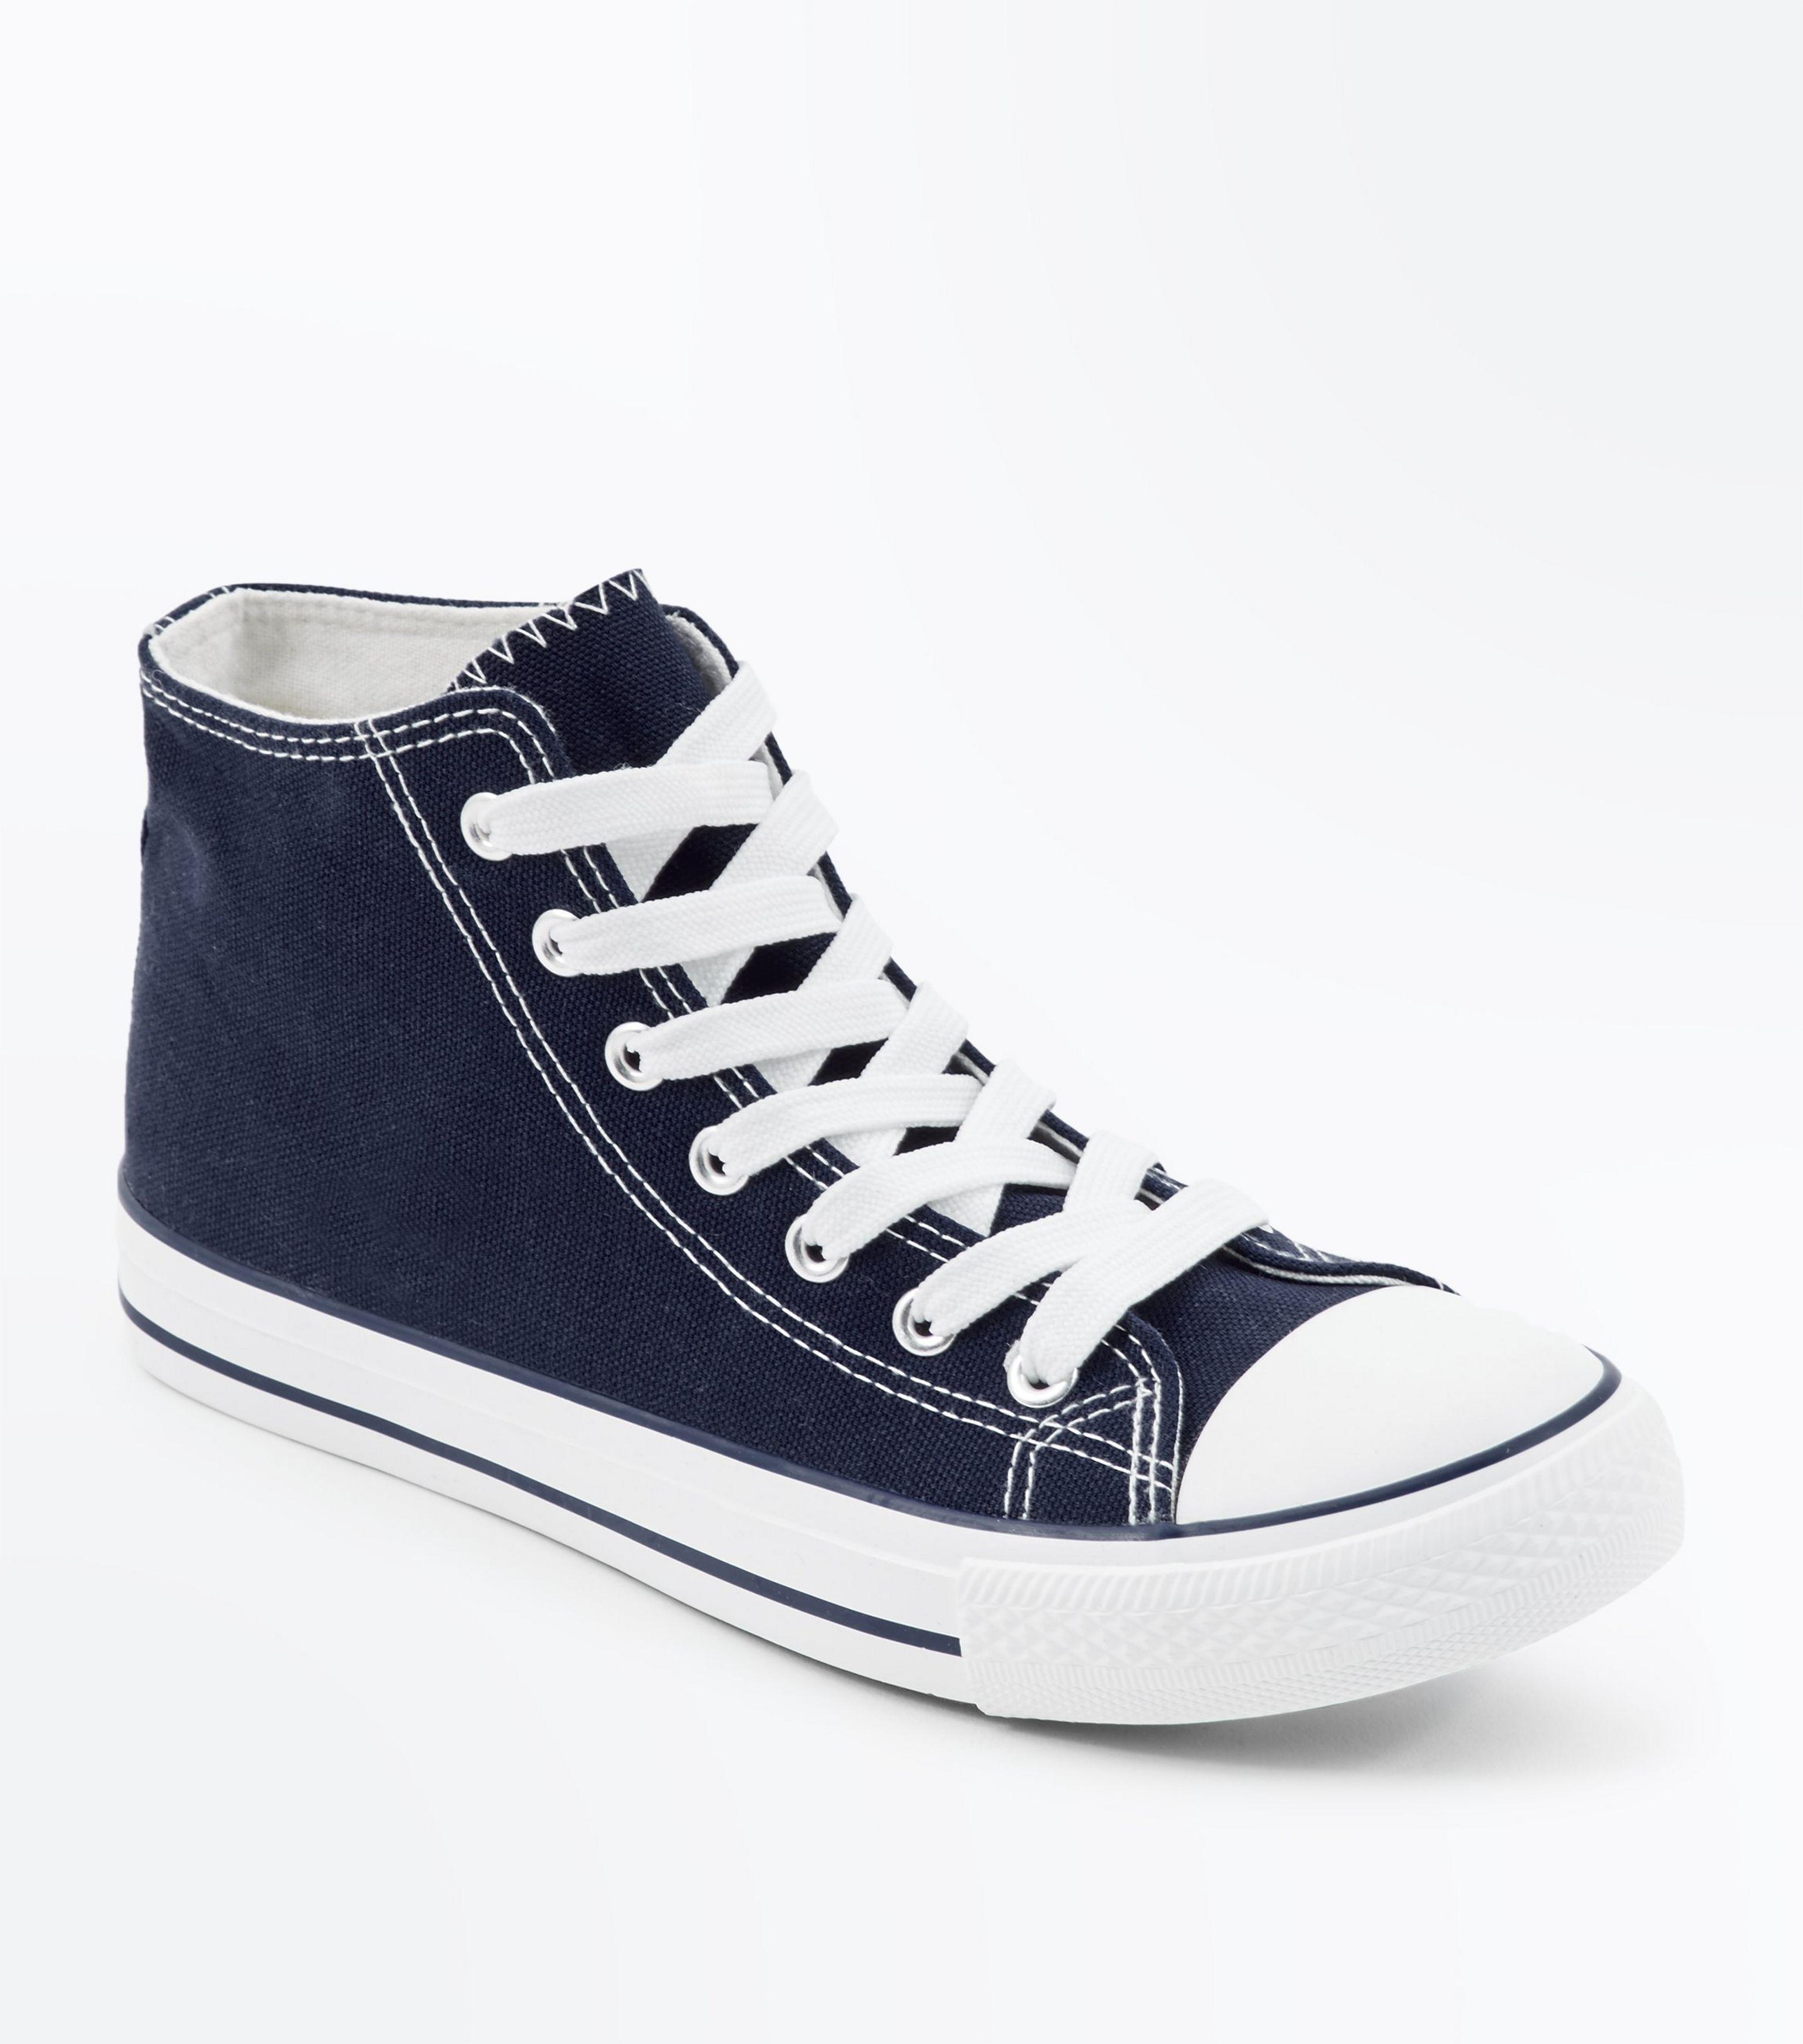 b70809fa4e18 New Look Navy Canvas Stripe Sole High Top Trainers in Blue - Lyst